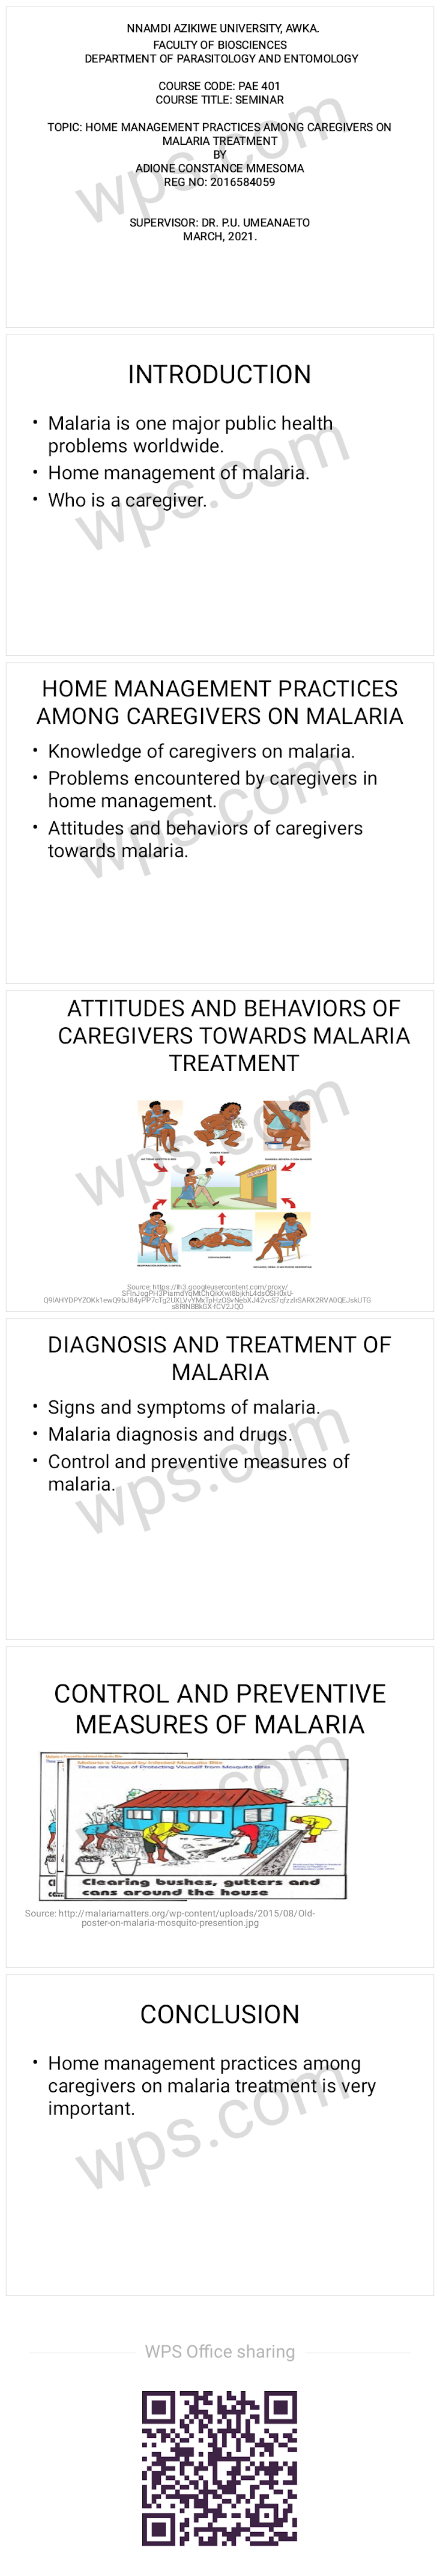 Home management practices among caregivers on malaria treatment.